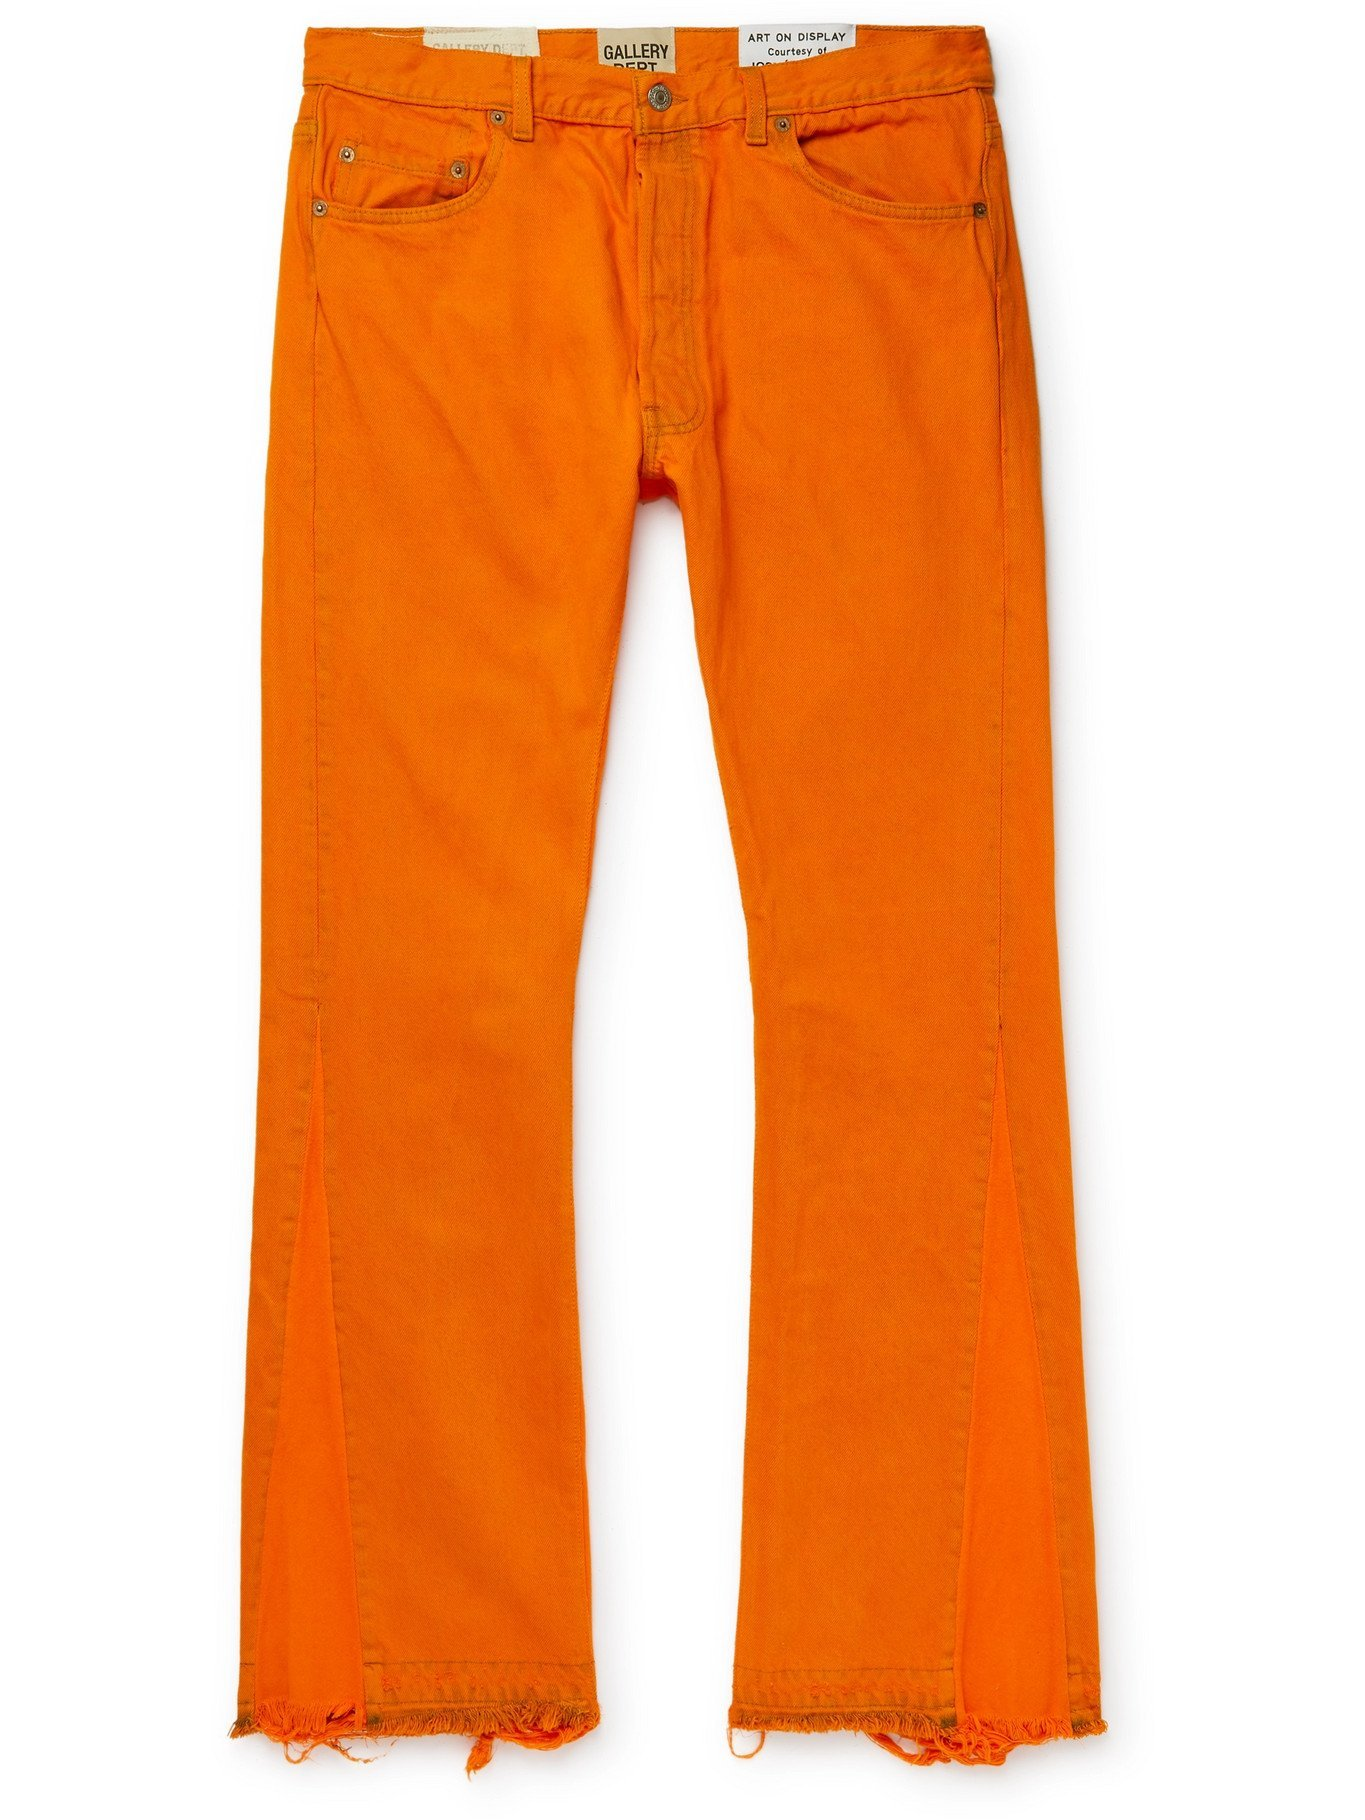 Photo: GALLERY DEPT. - La Flare Slim-Fit Distressed Denim Jeans - Orange - 32W 32L